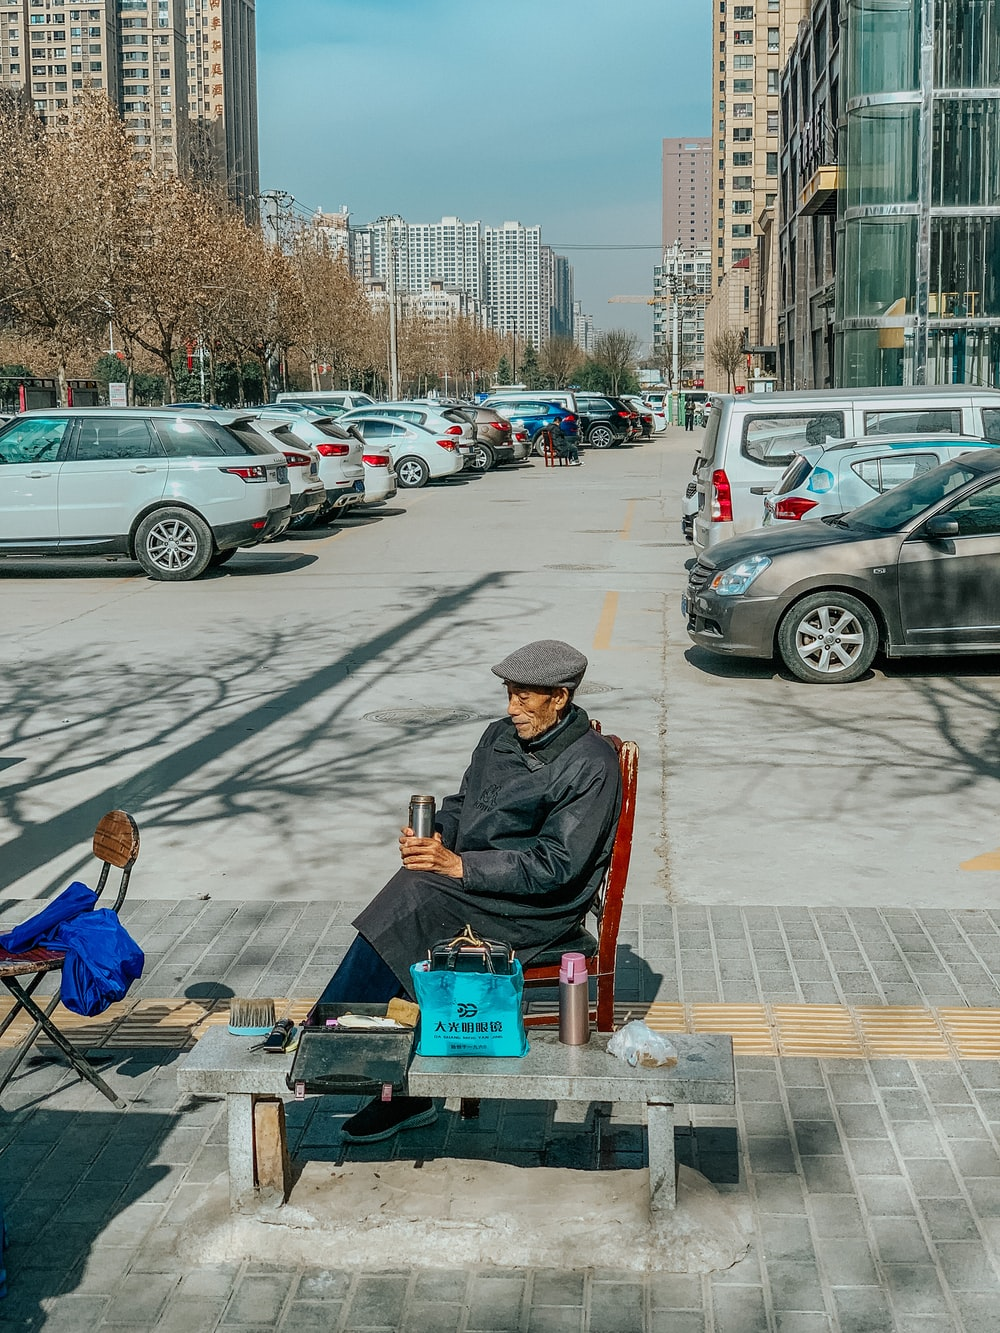 man in brown jacket sitting on chair reading book on street during daytime